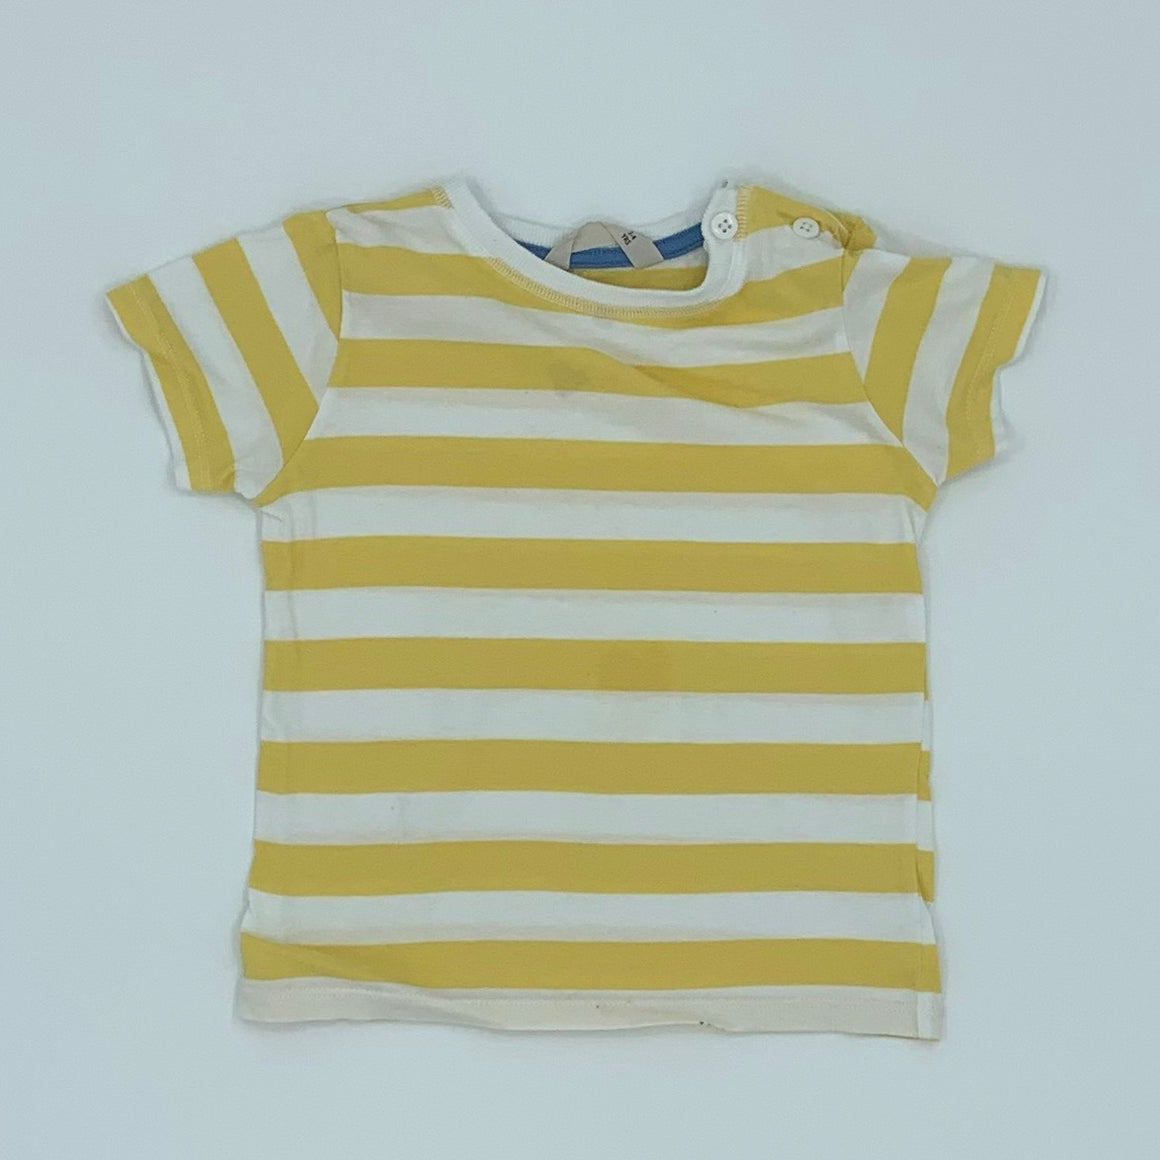 Gently Worn John Lewis yellow striped t-shirt size 3-4 years